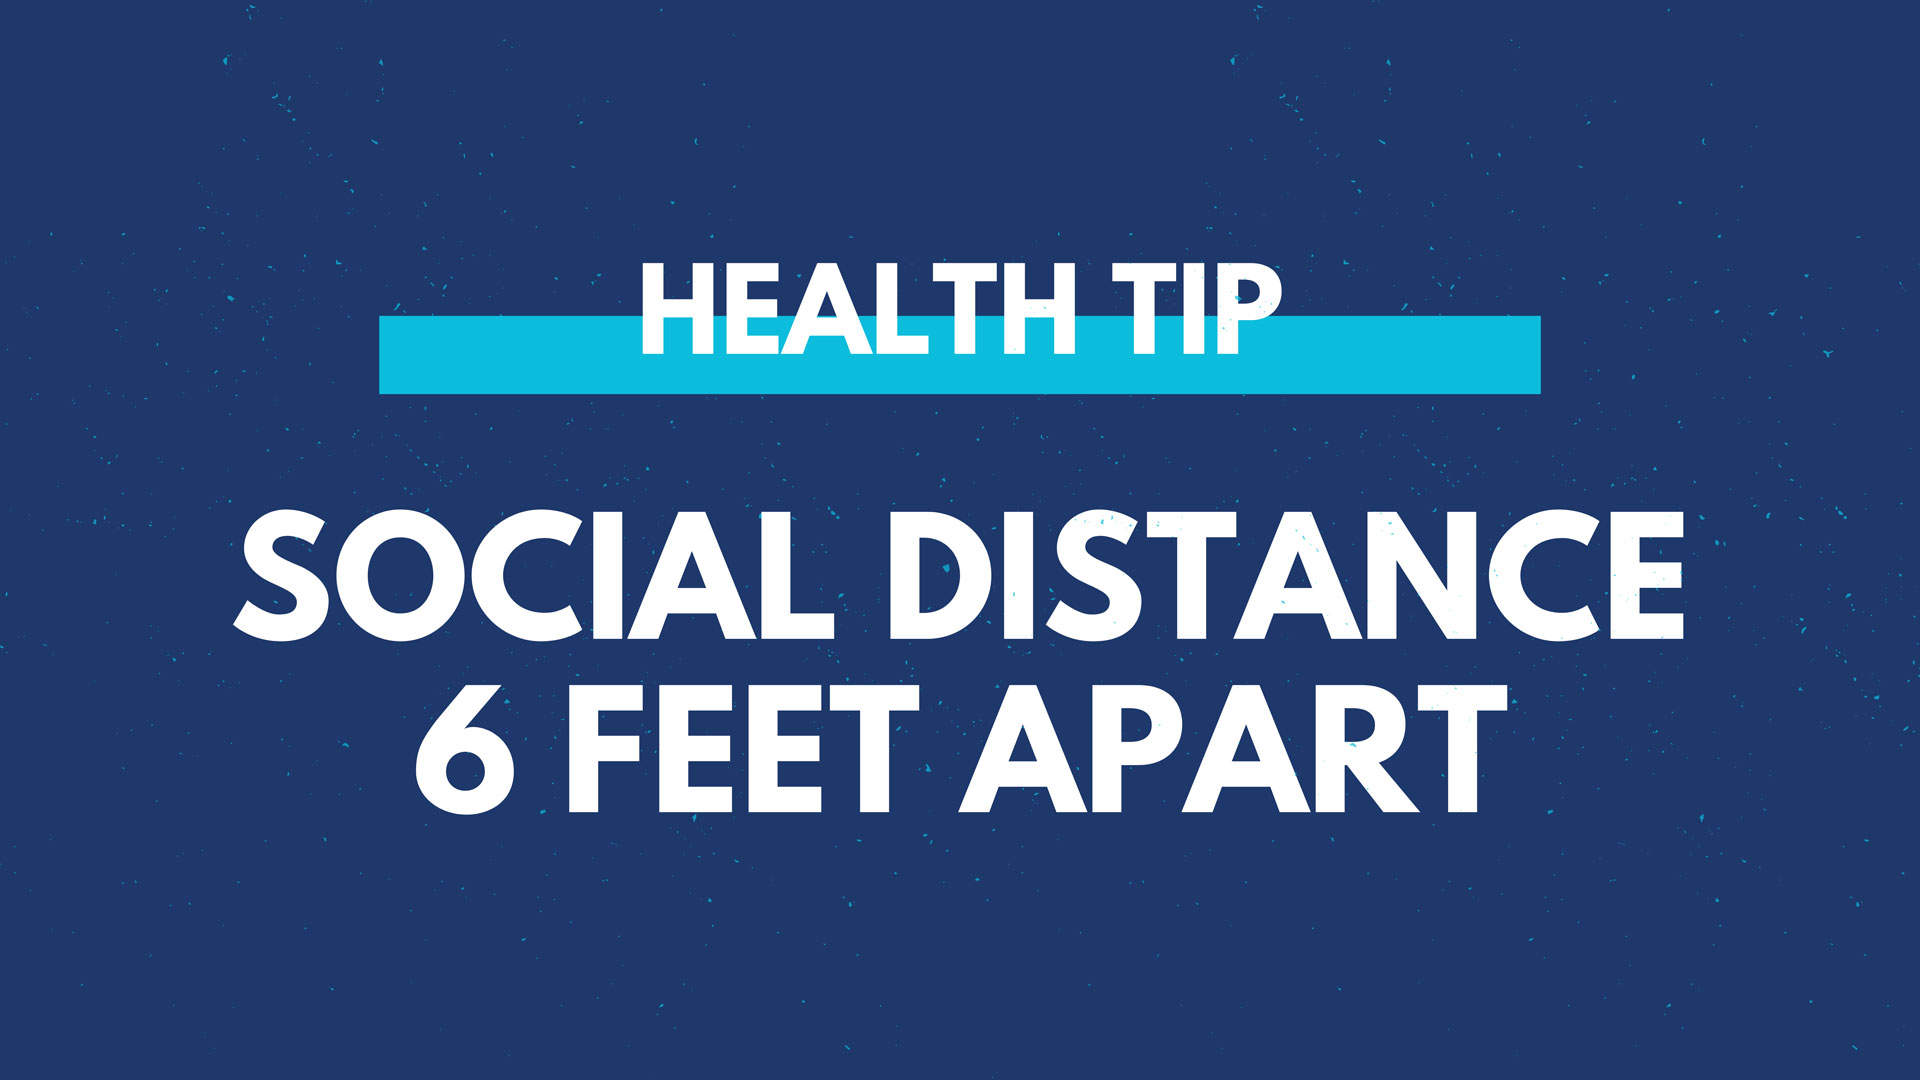 Health Tip - Social Distance